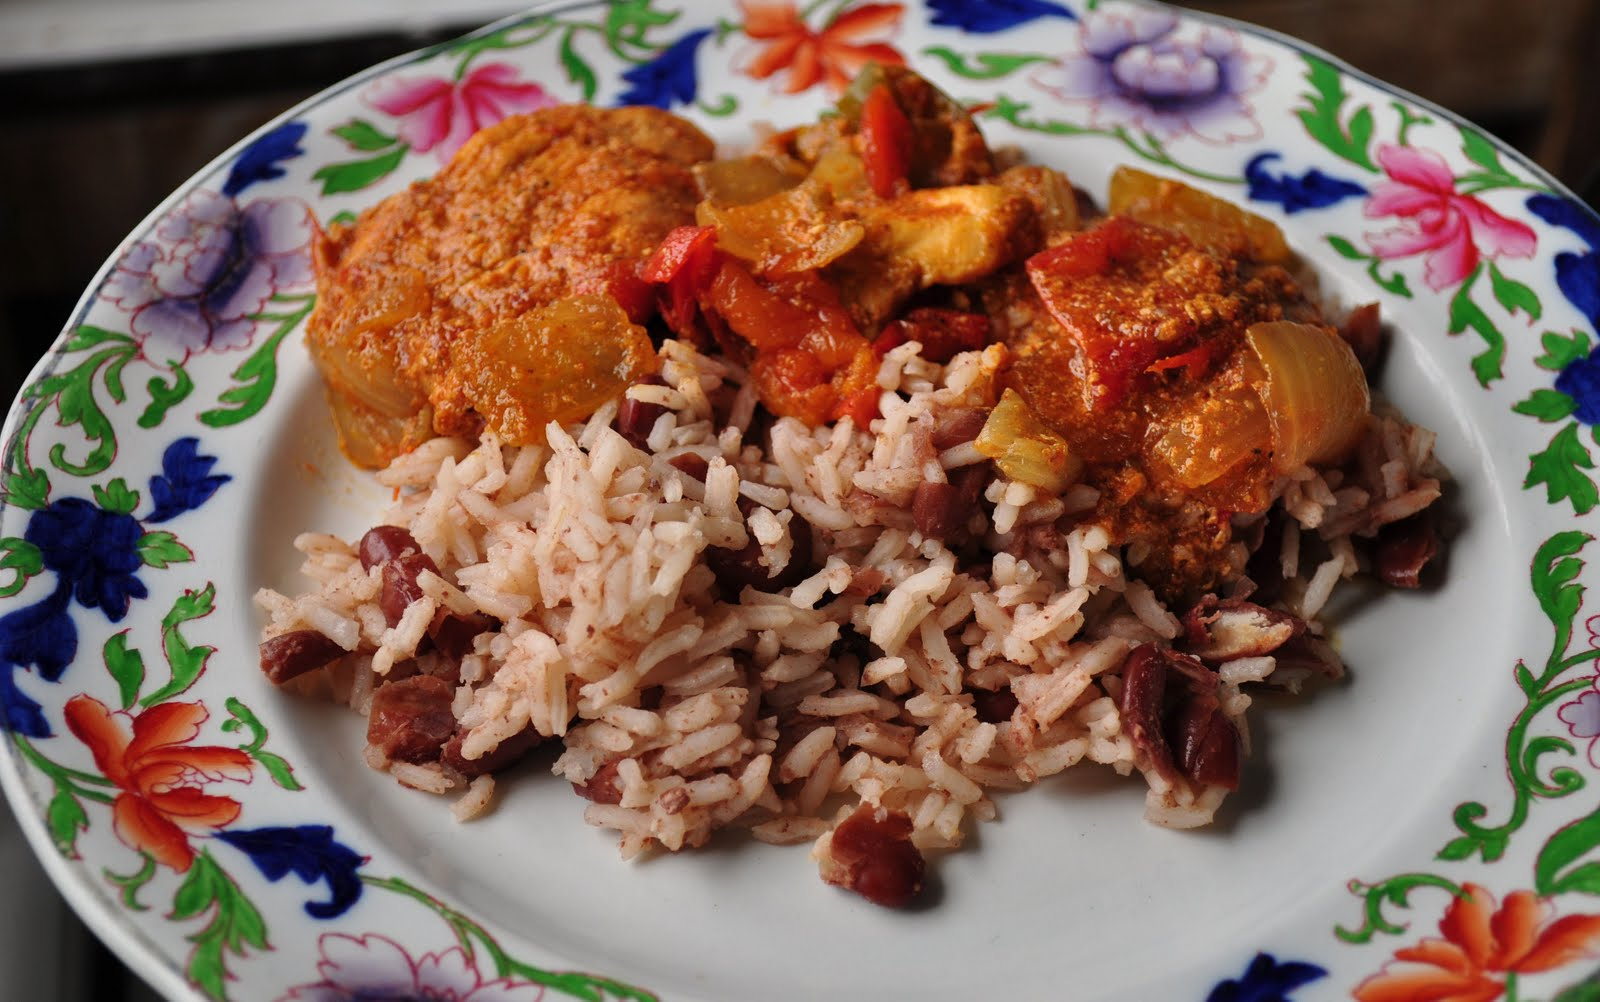 ... life in Belize: Dona Betty's Belizean Stewed Chicken, Rice and Beans